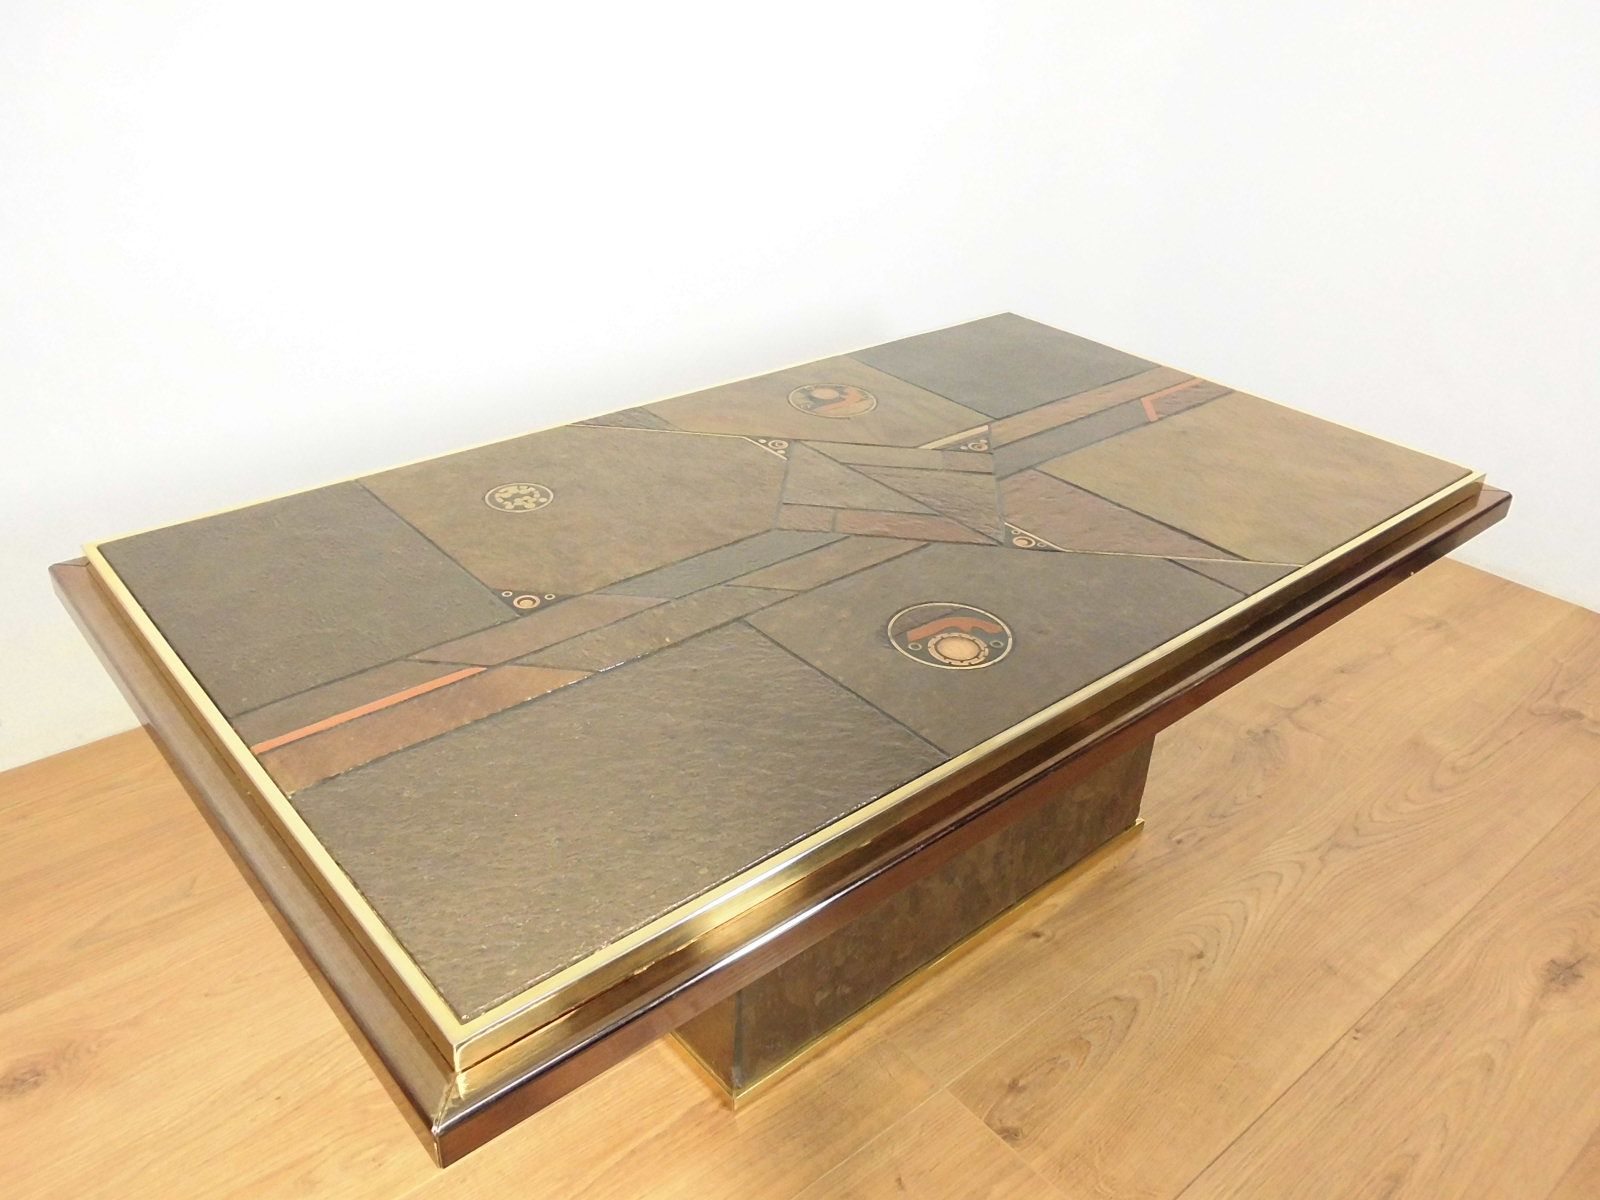 Stone and bronze coffee table by paul kingma 1970 for sale at pamono price 399000 regular price 620000 geotapseo Image collections